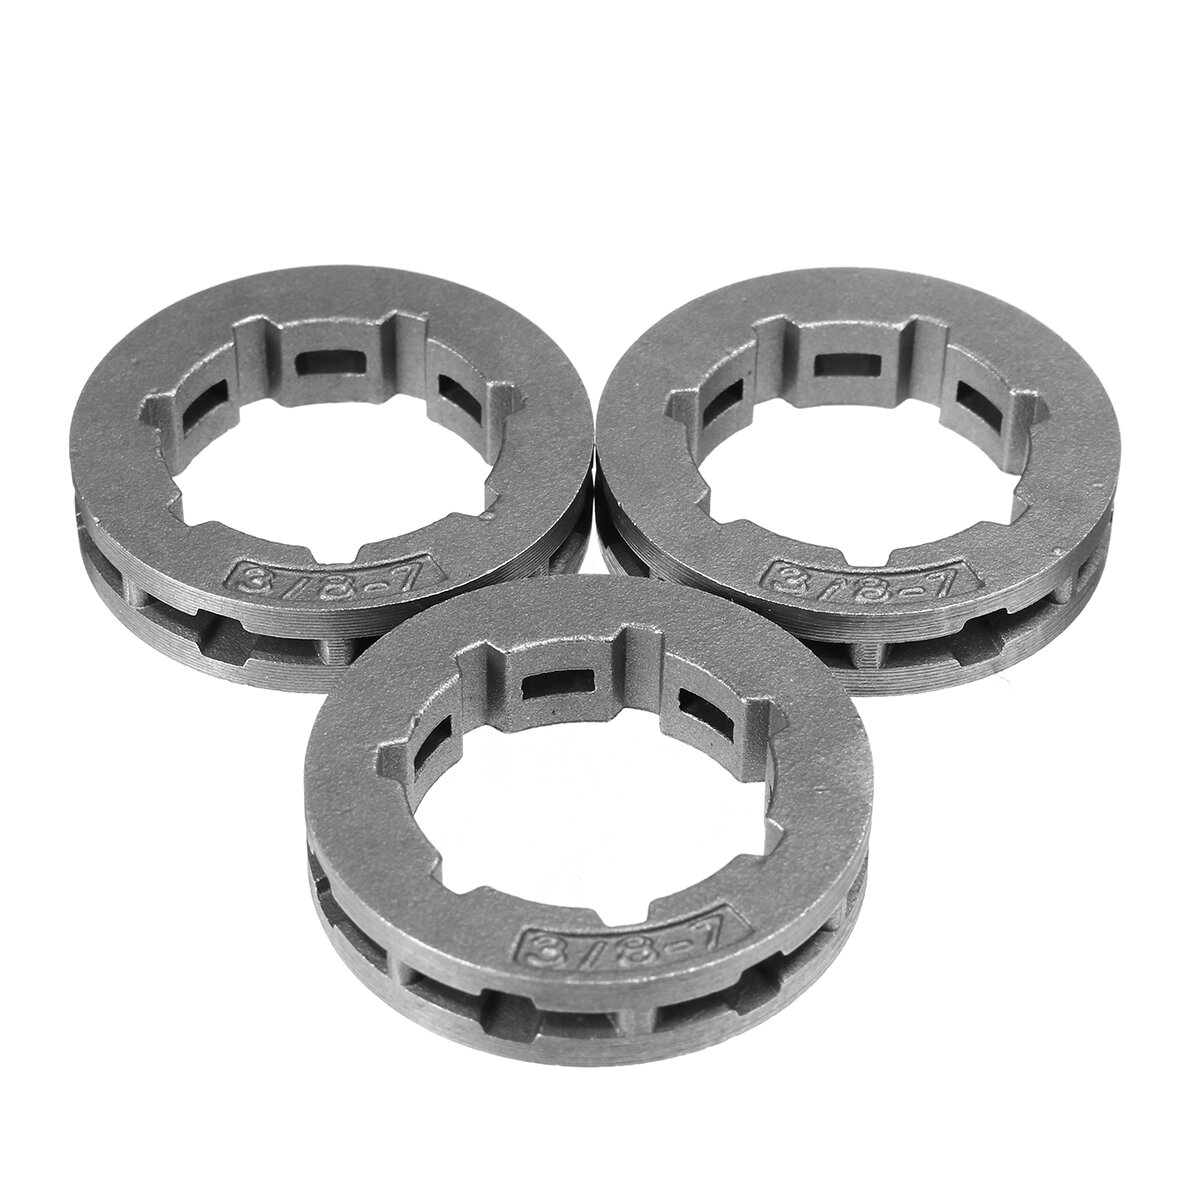 3pcs Sprocket Rim For Stihl 024 026 028 029 034 MS260 MS270 MS280 MS290 Chain Saw Part